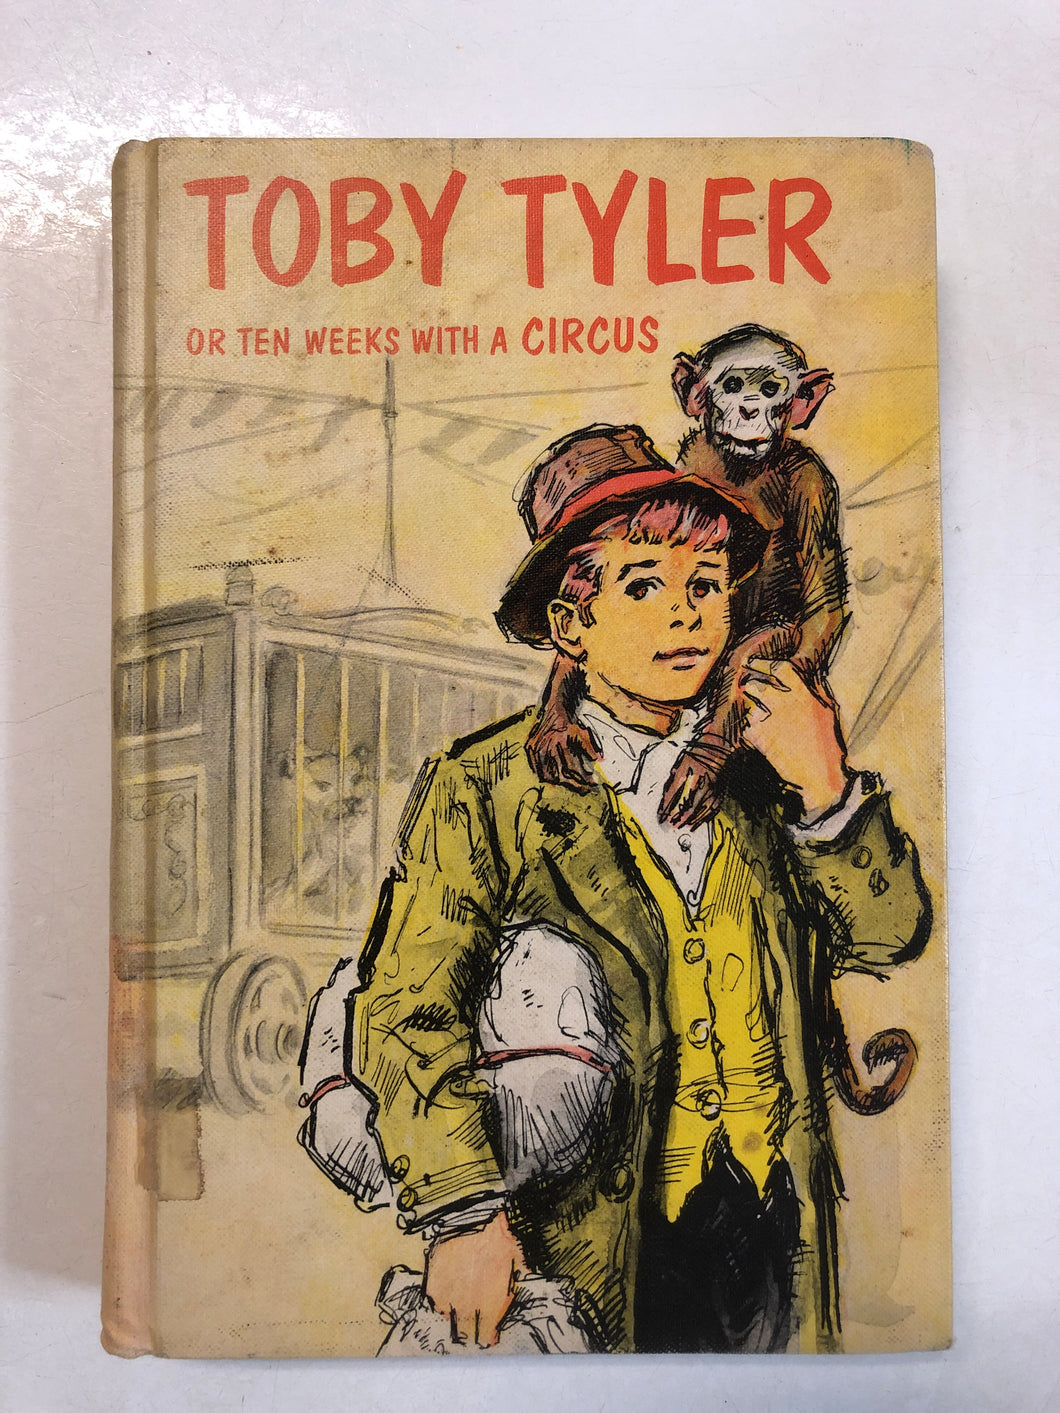 Toby Tyler or Ten Weeks With a Circus - Slick Cat Books